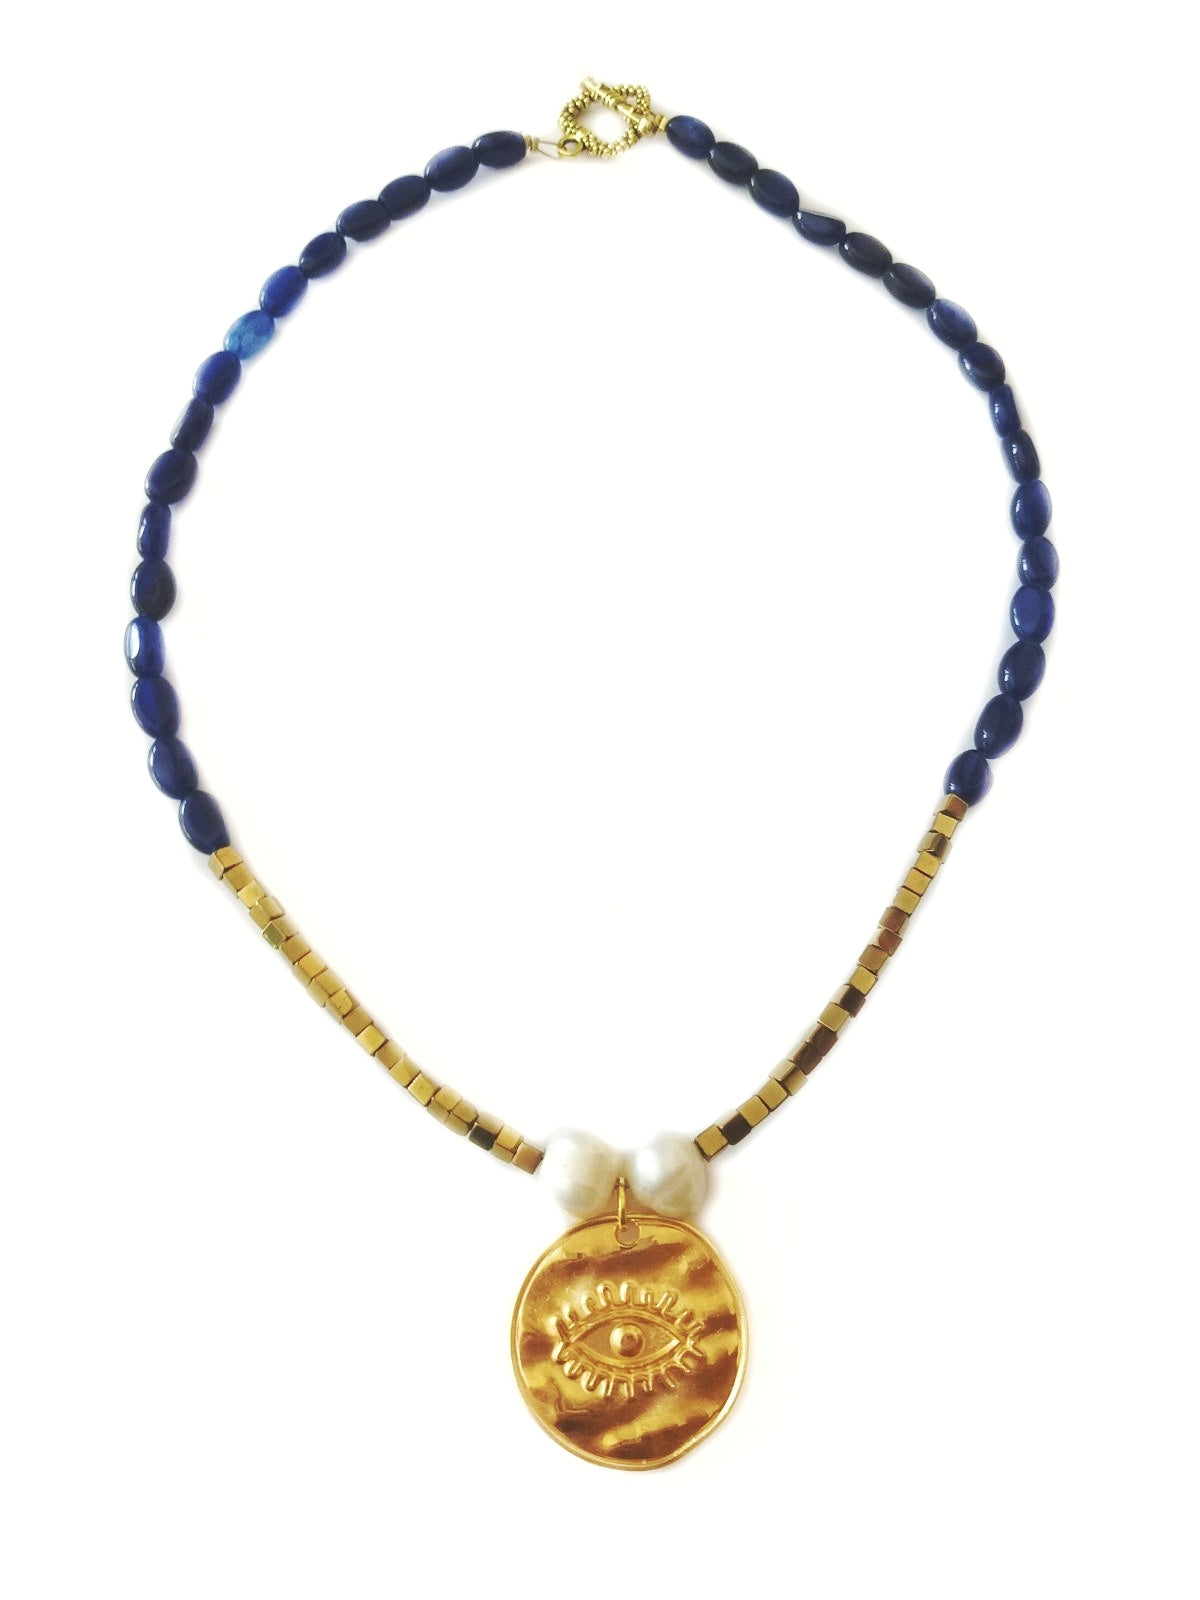 The summer in Greek islands necklace - Sofi Moukidou